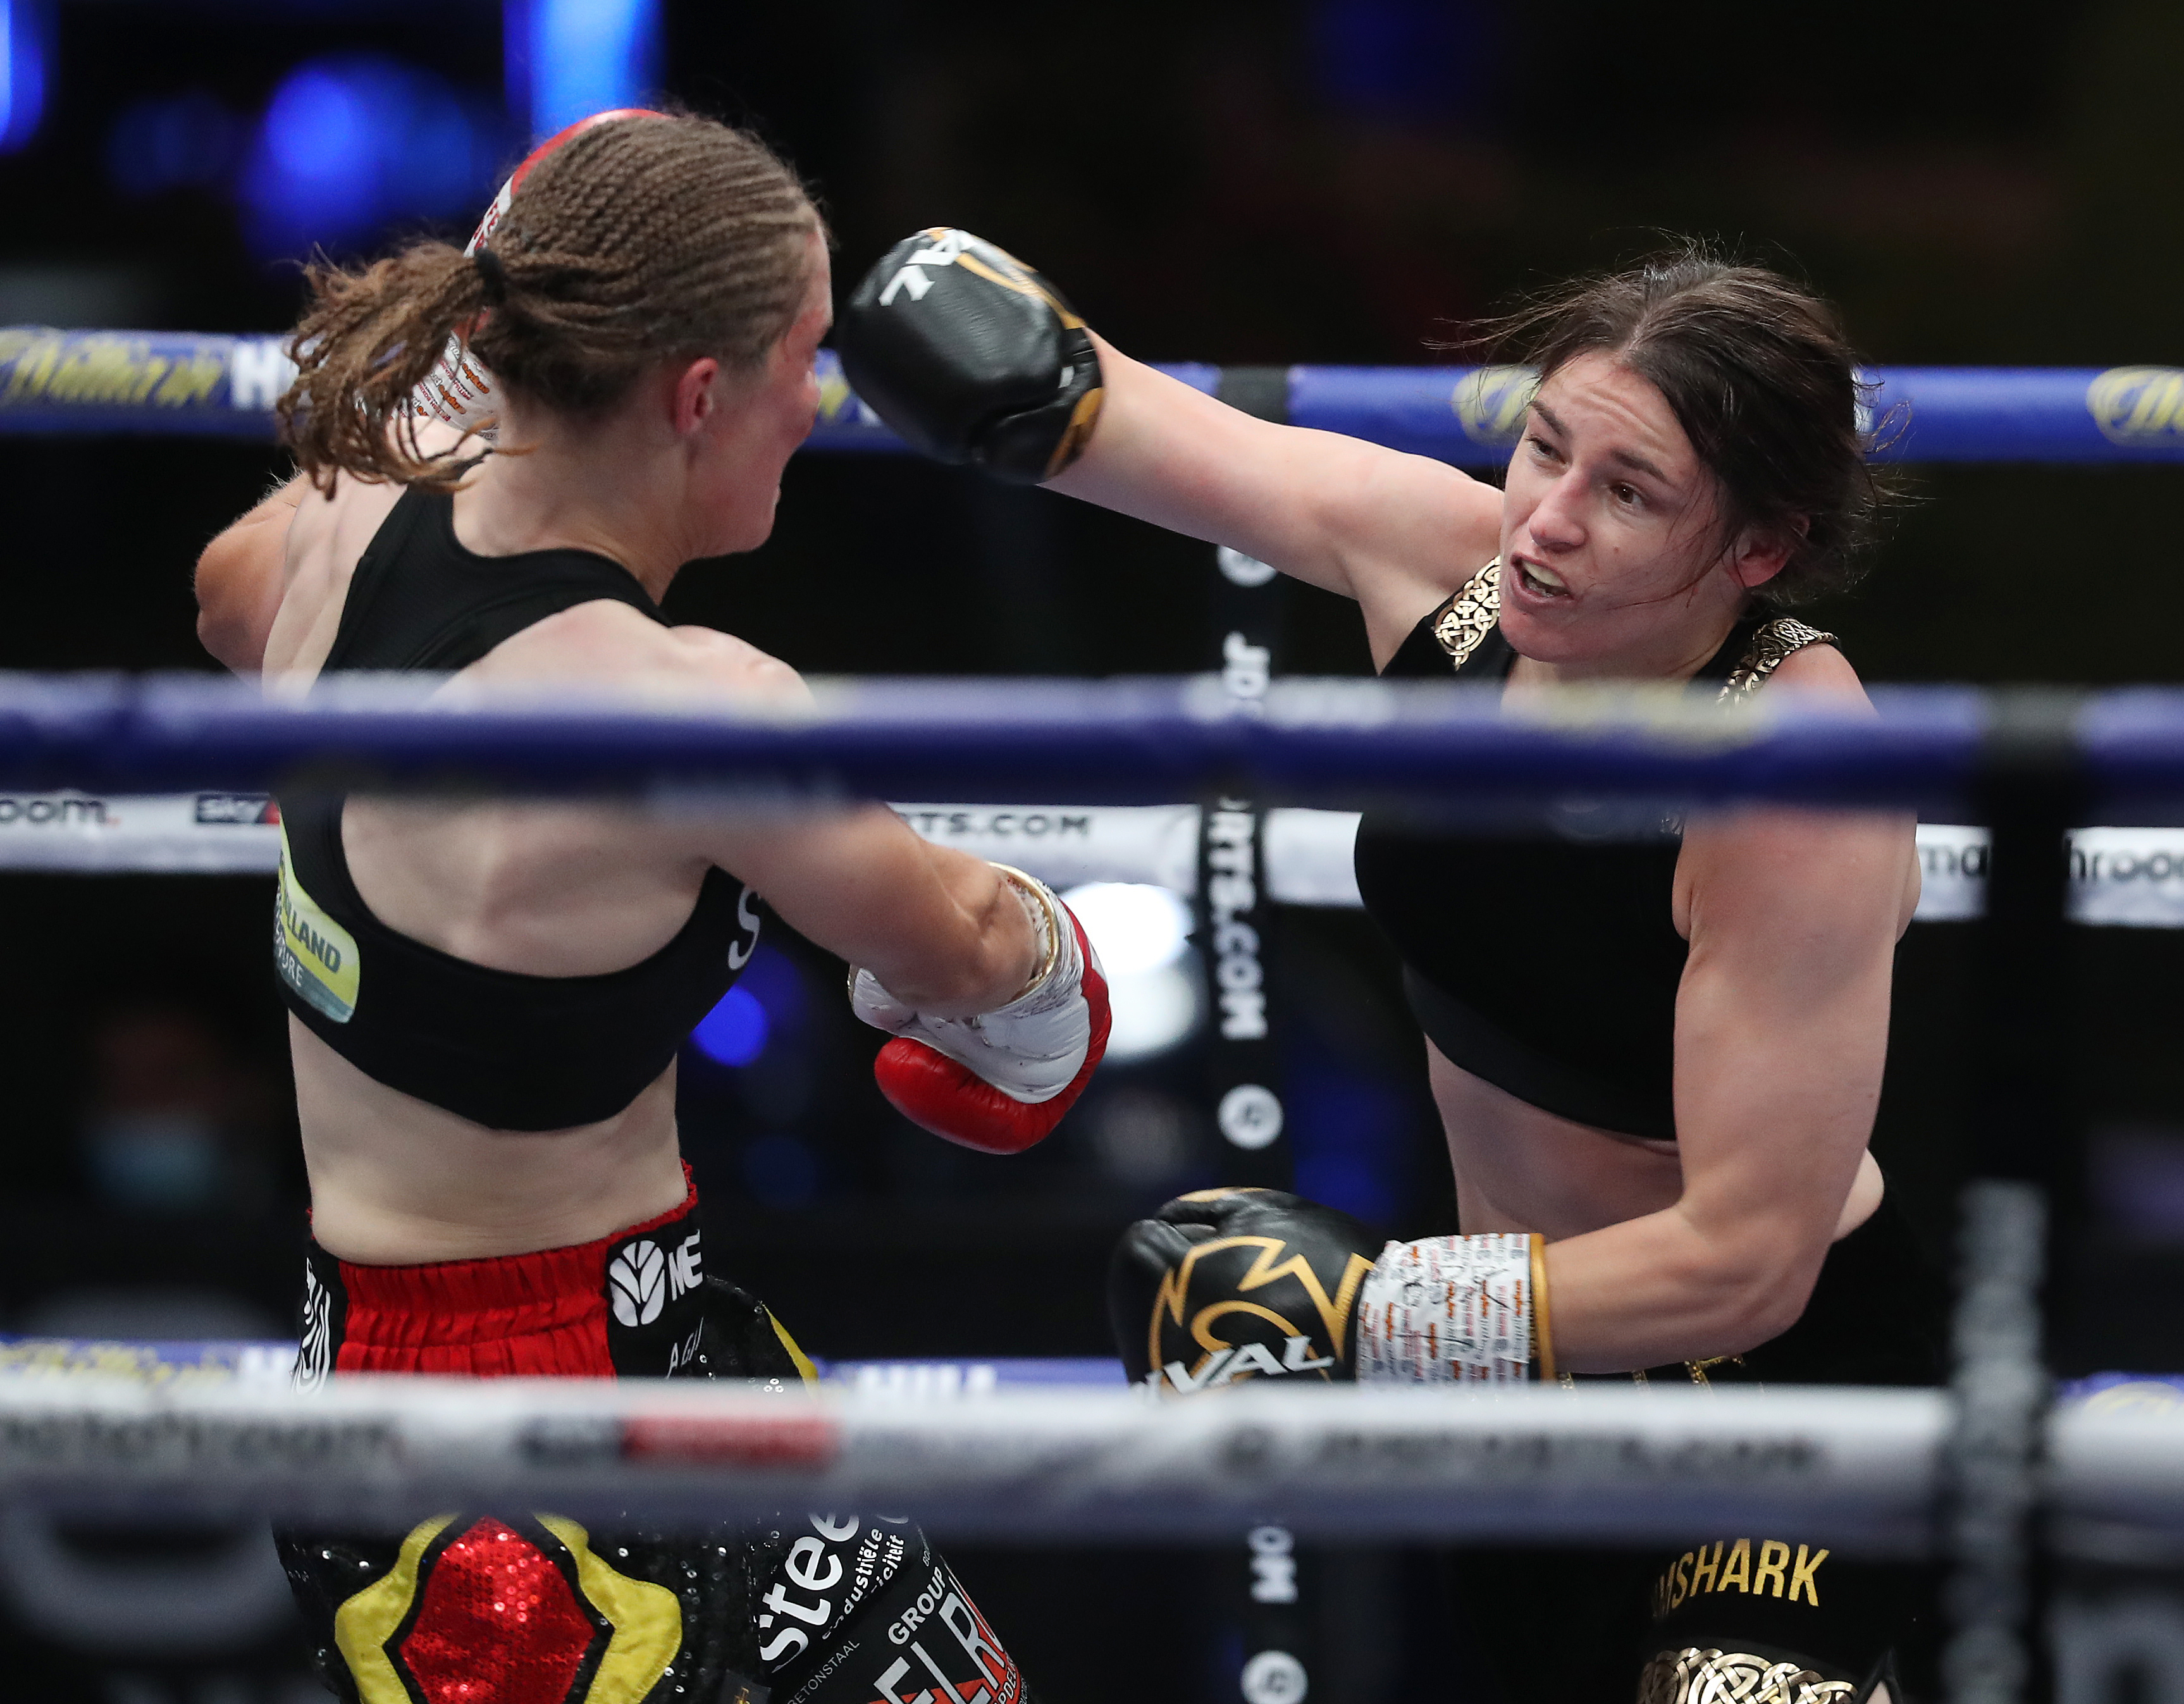 IMG 7088 - MatchRoom Boxing Results: Katie Taylor Ends Rivalry with Delfine Persoon With Unanimous Decision Victory